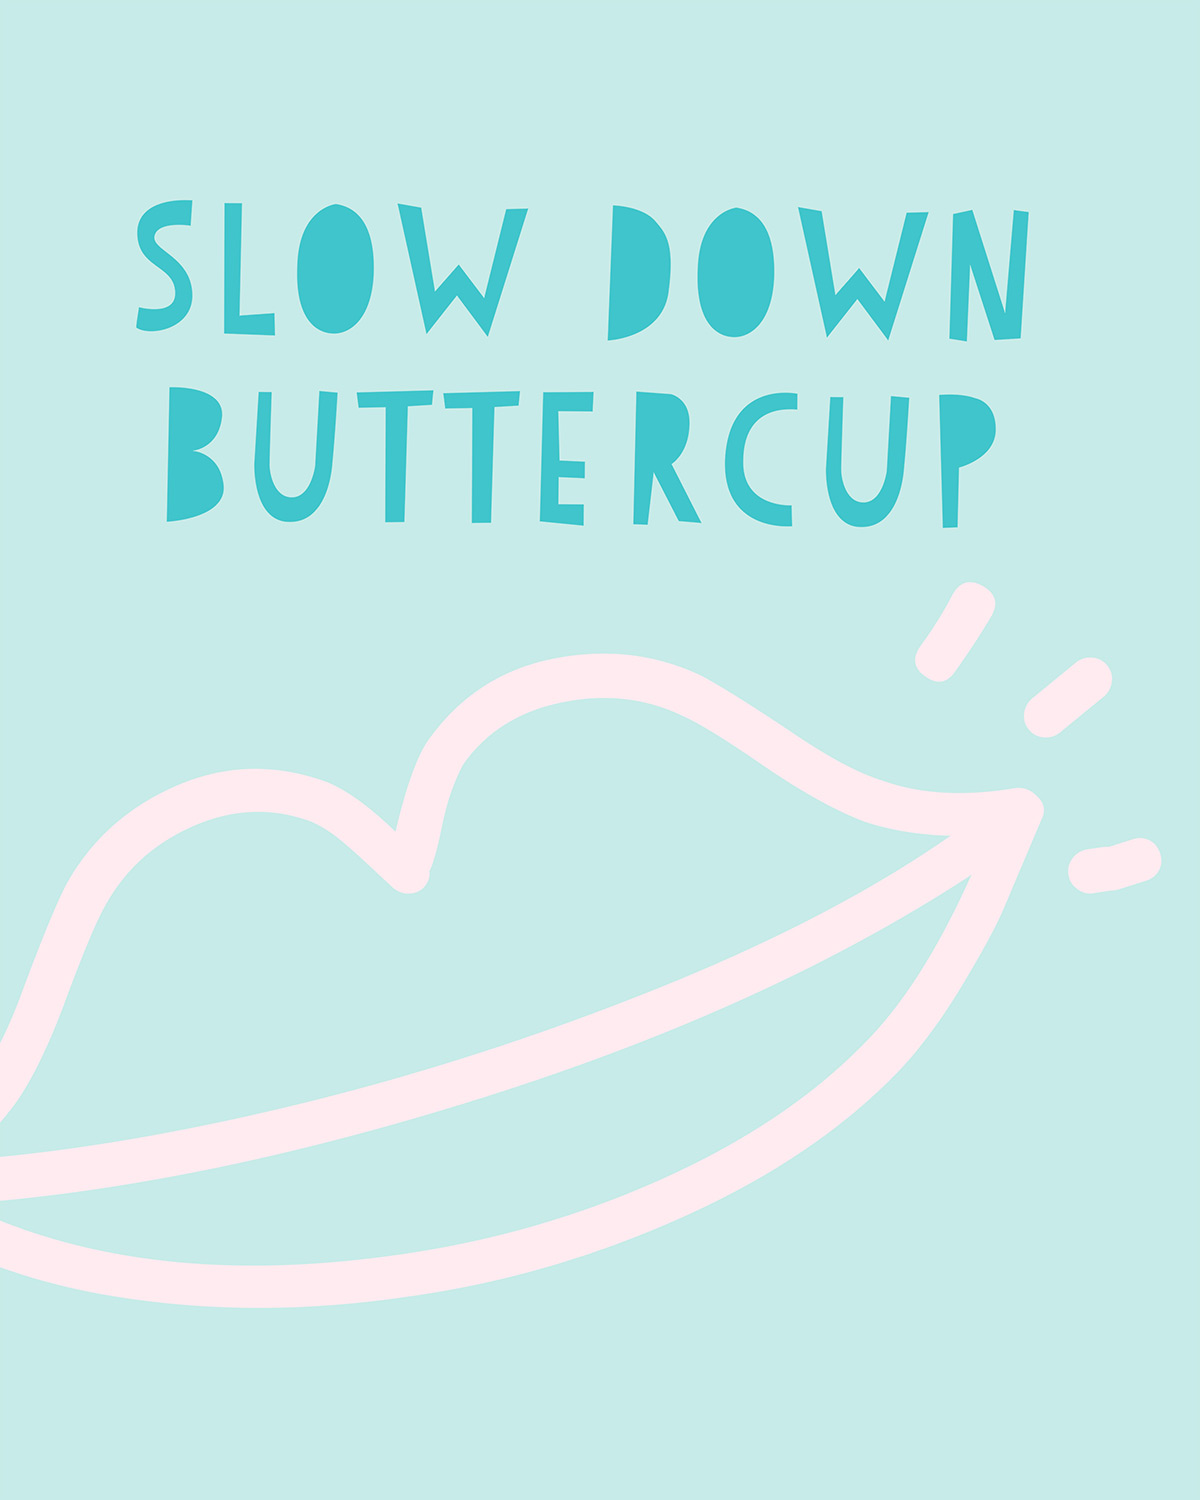 Slow down buttercup print design by kraft&mint